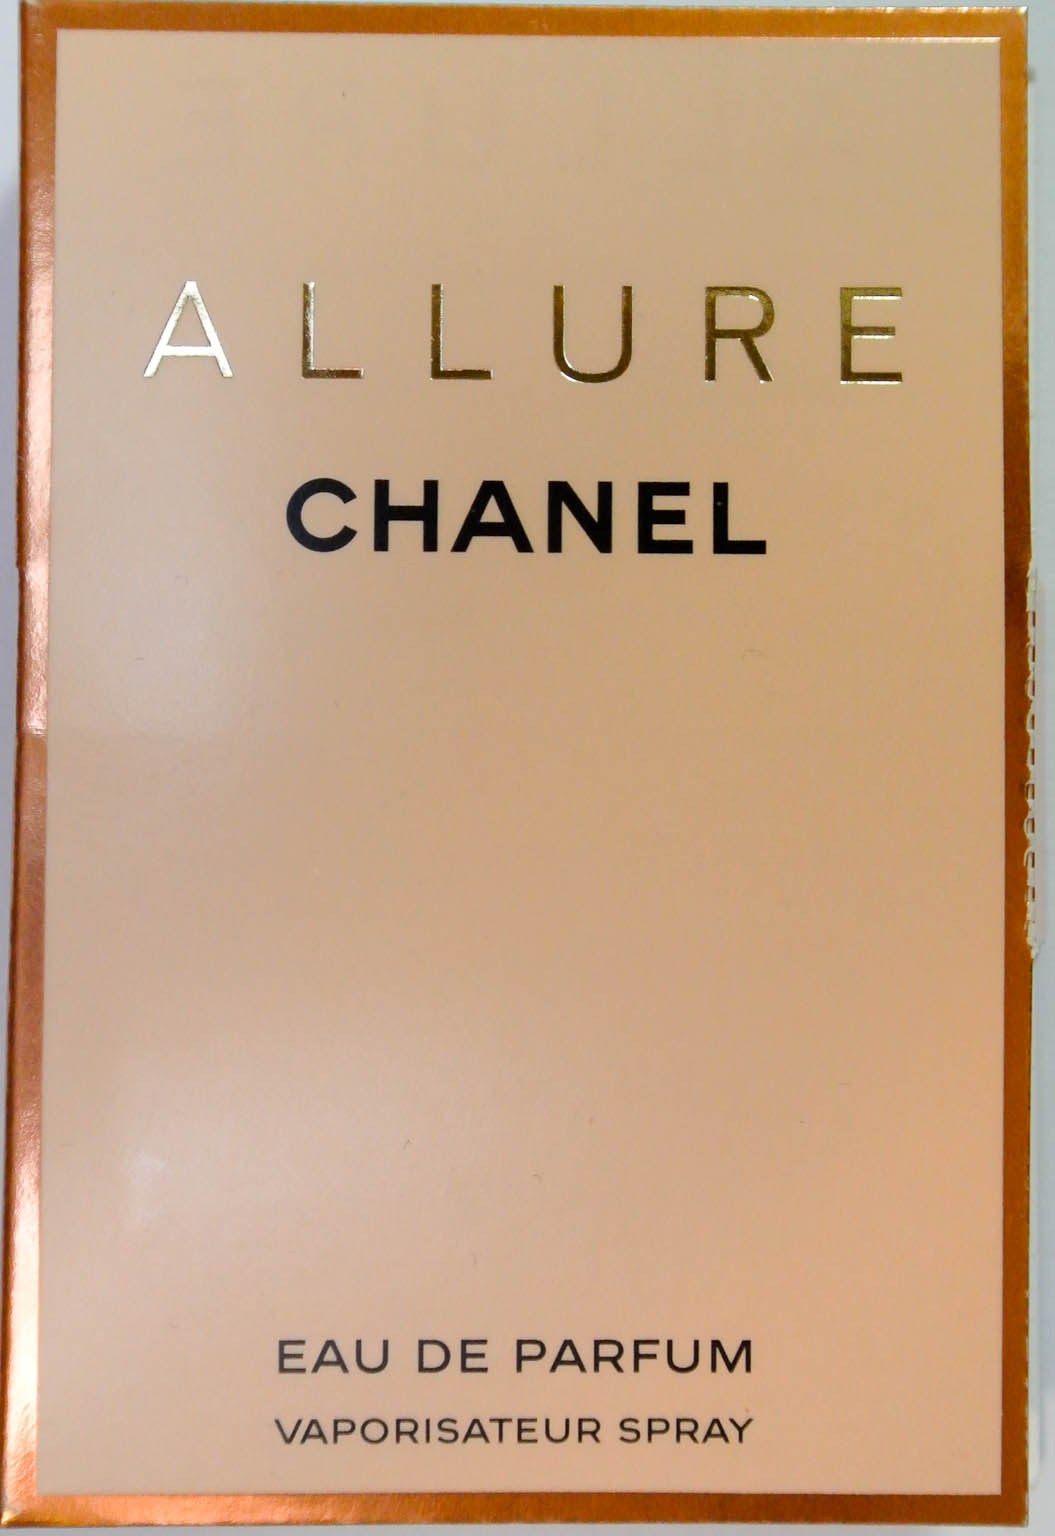 Connoisseur De Parfum September 2013 Vial Tester All Varian Double Review Chanel Allure Eau And